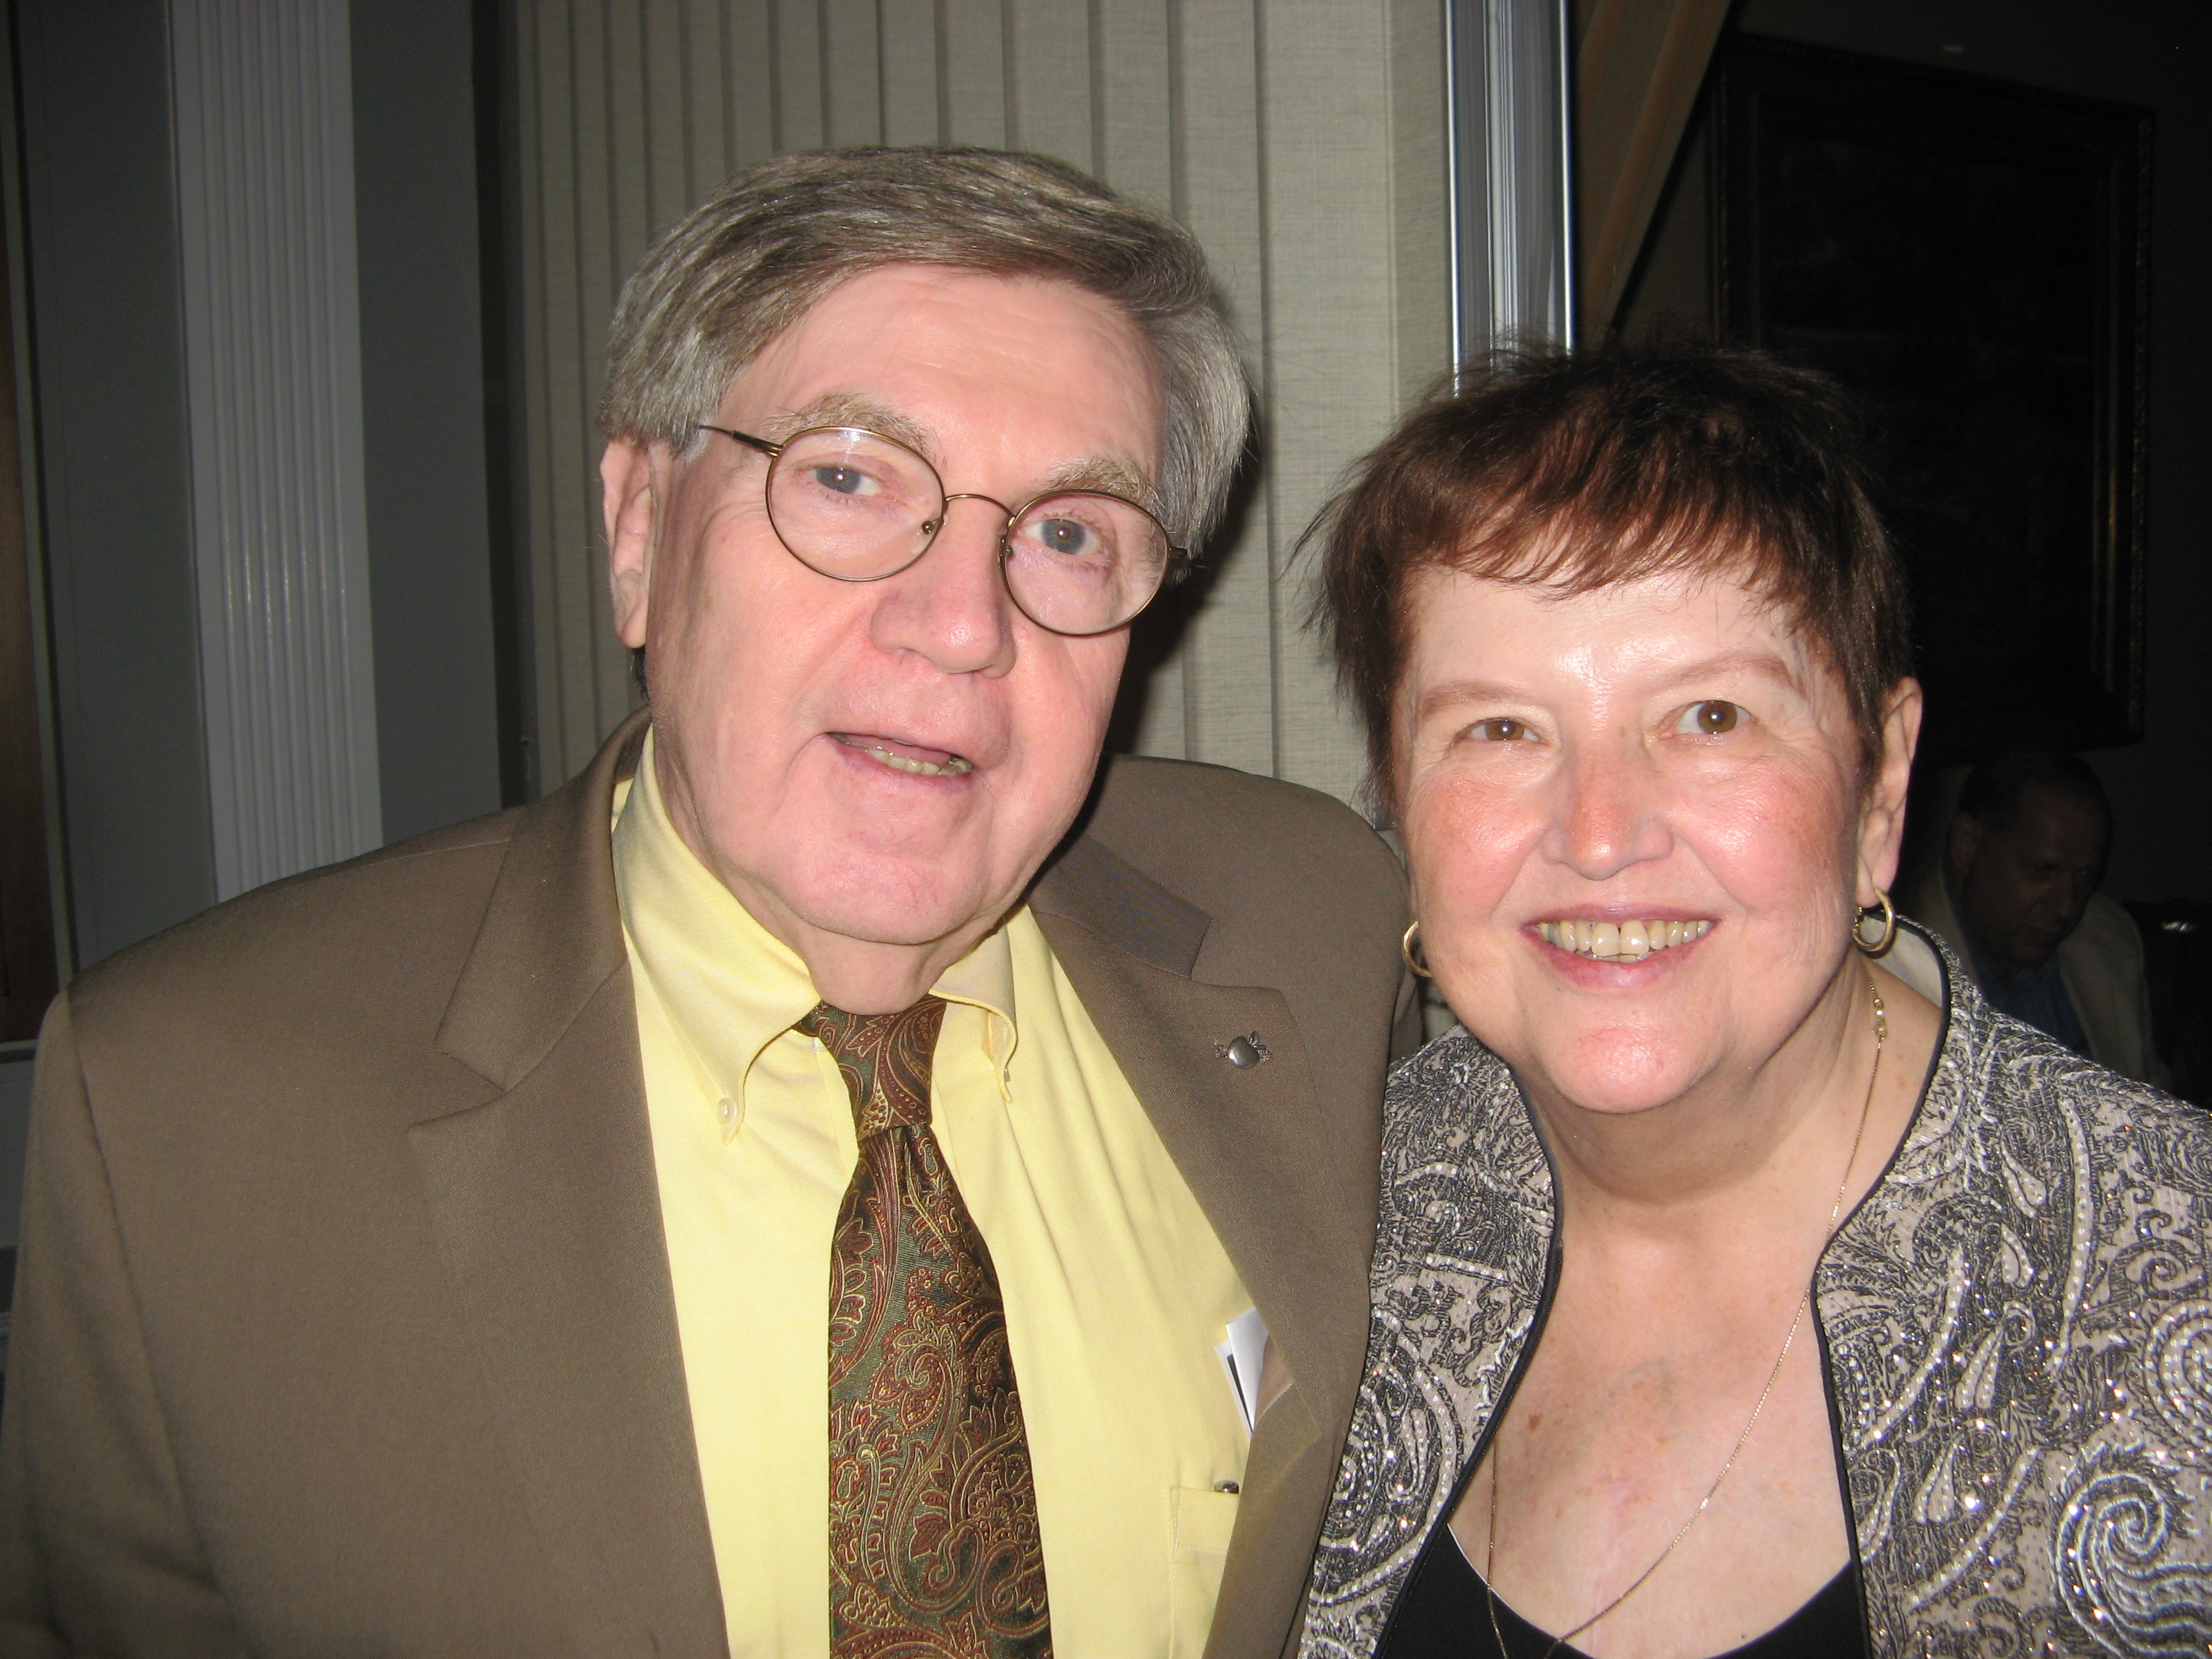 Andy McGowan with his wife Judy at the Yeats celebration. (Photo courtesy Wild Geese)